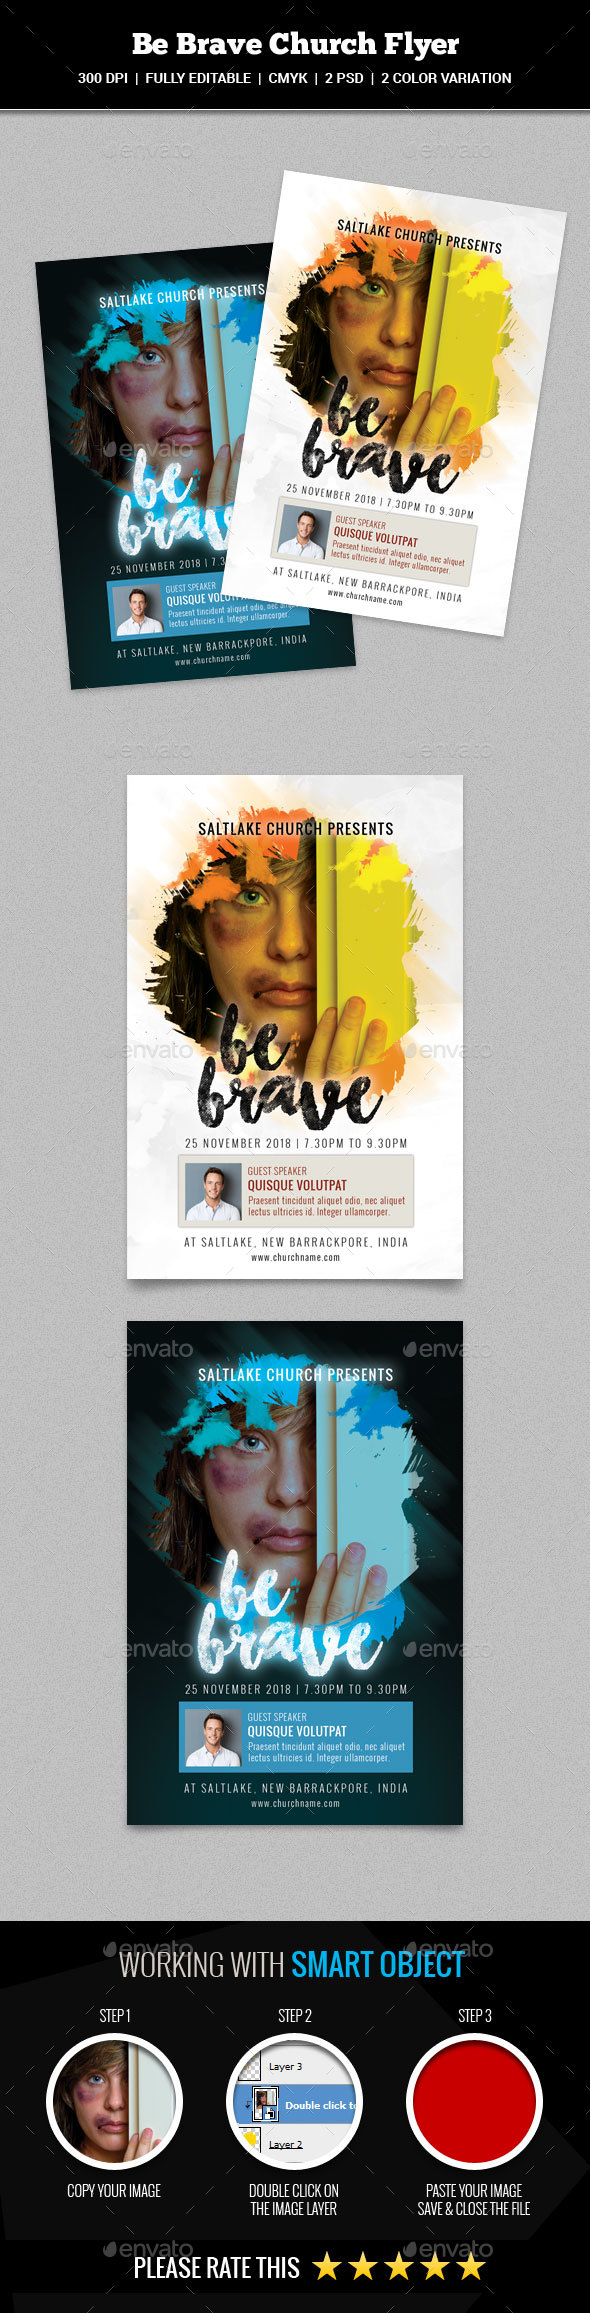 Be Brave Church Flyer - Church Flyers